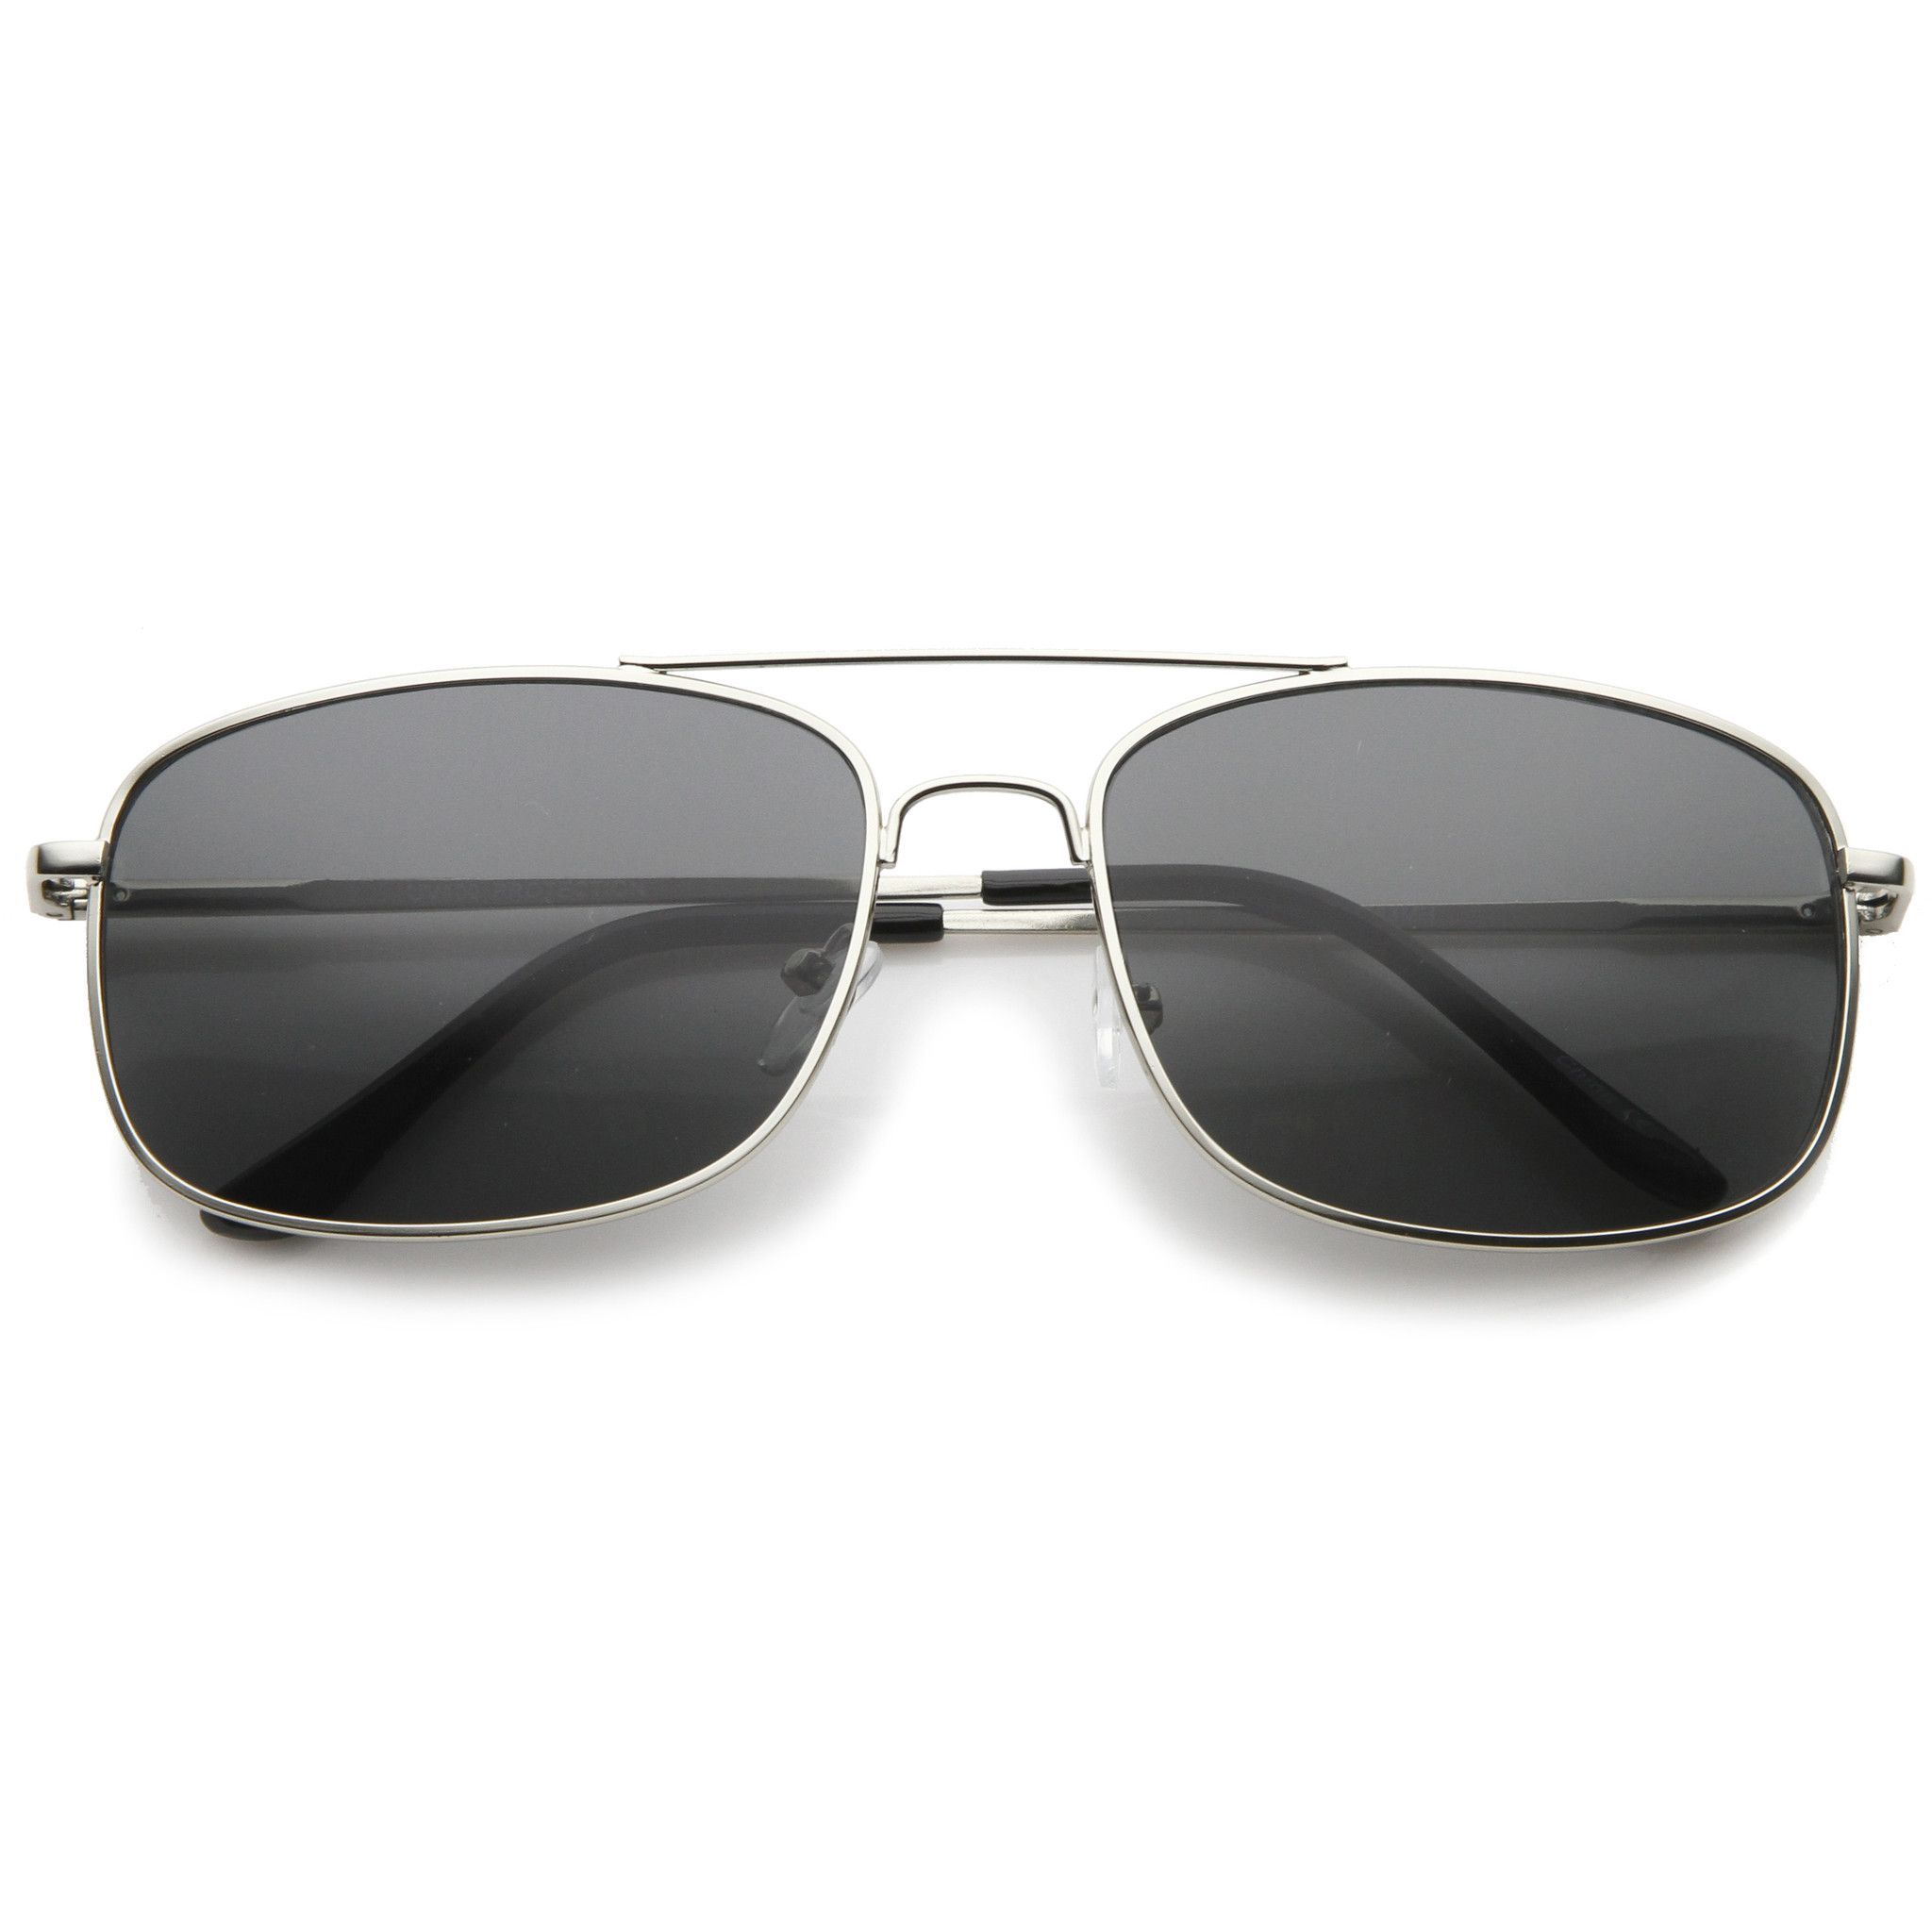 918867b1c7a8 Classic Men's Square Wired Metal Aviator Sunglasses A028 | clothes ...